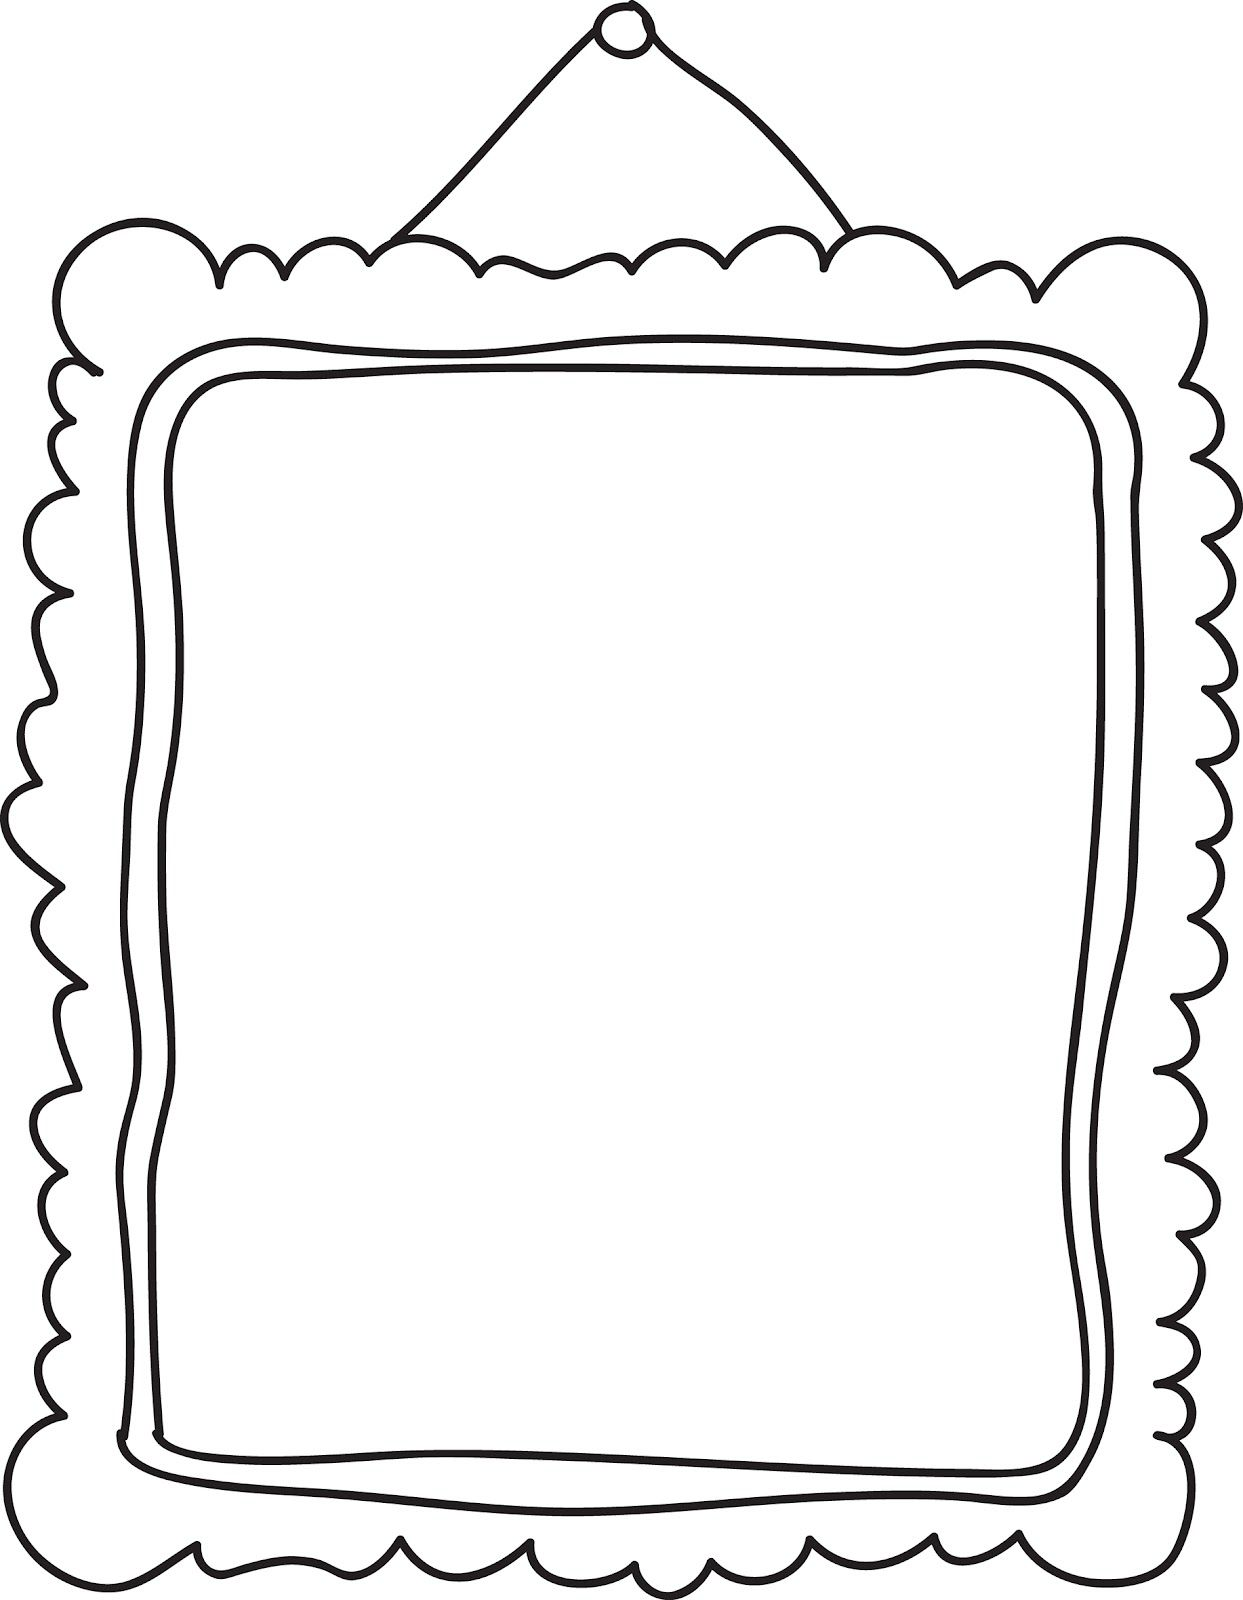 picture frame clipart cartoon